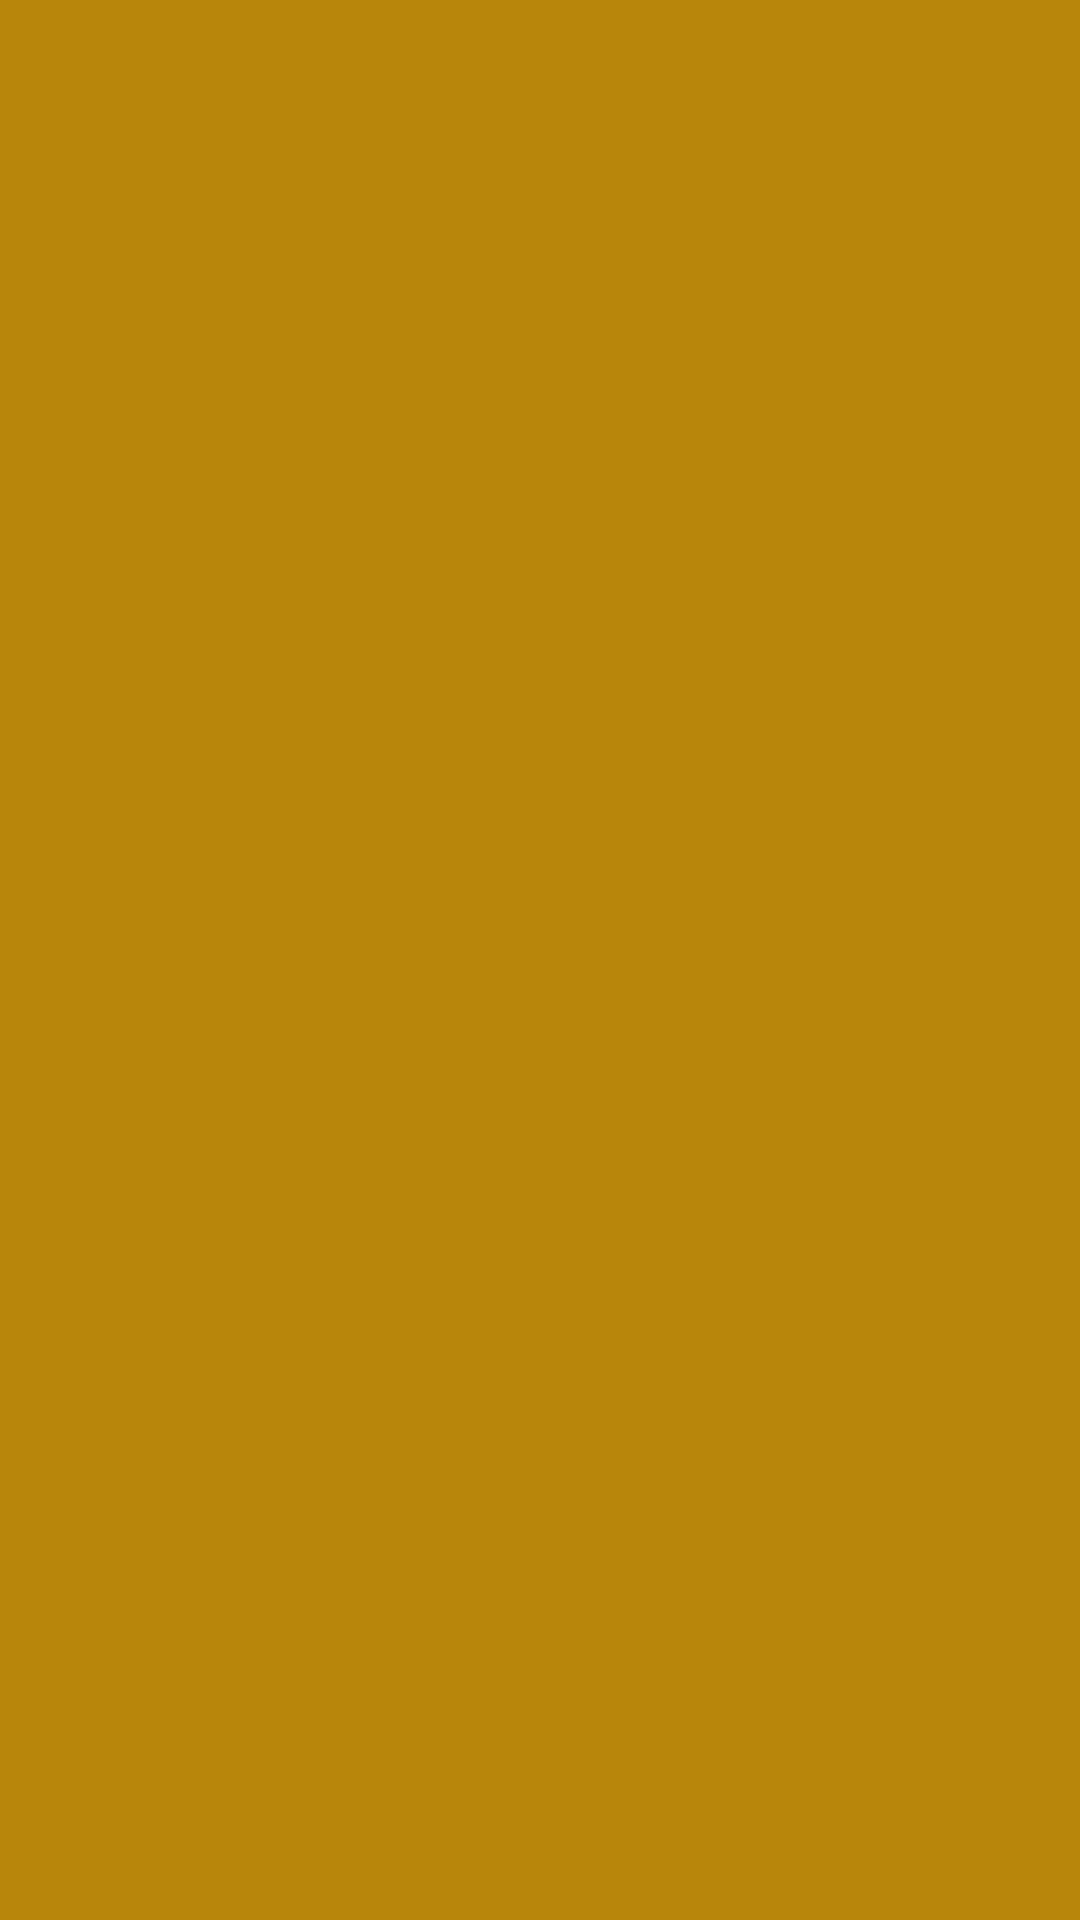 1080x1920 Dark Goldenrod Solid Color Background